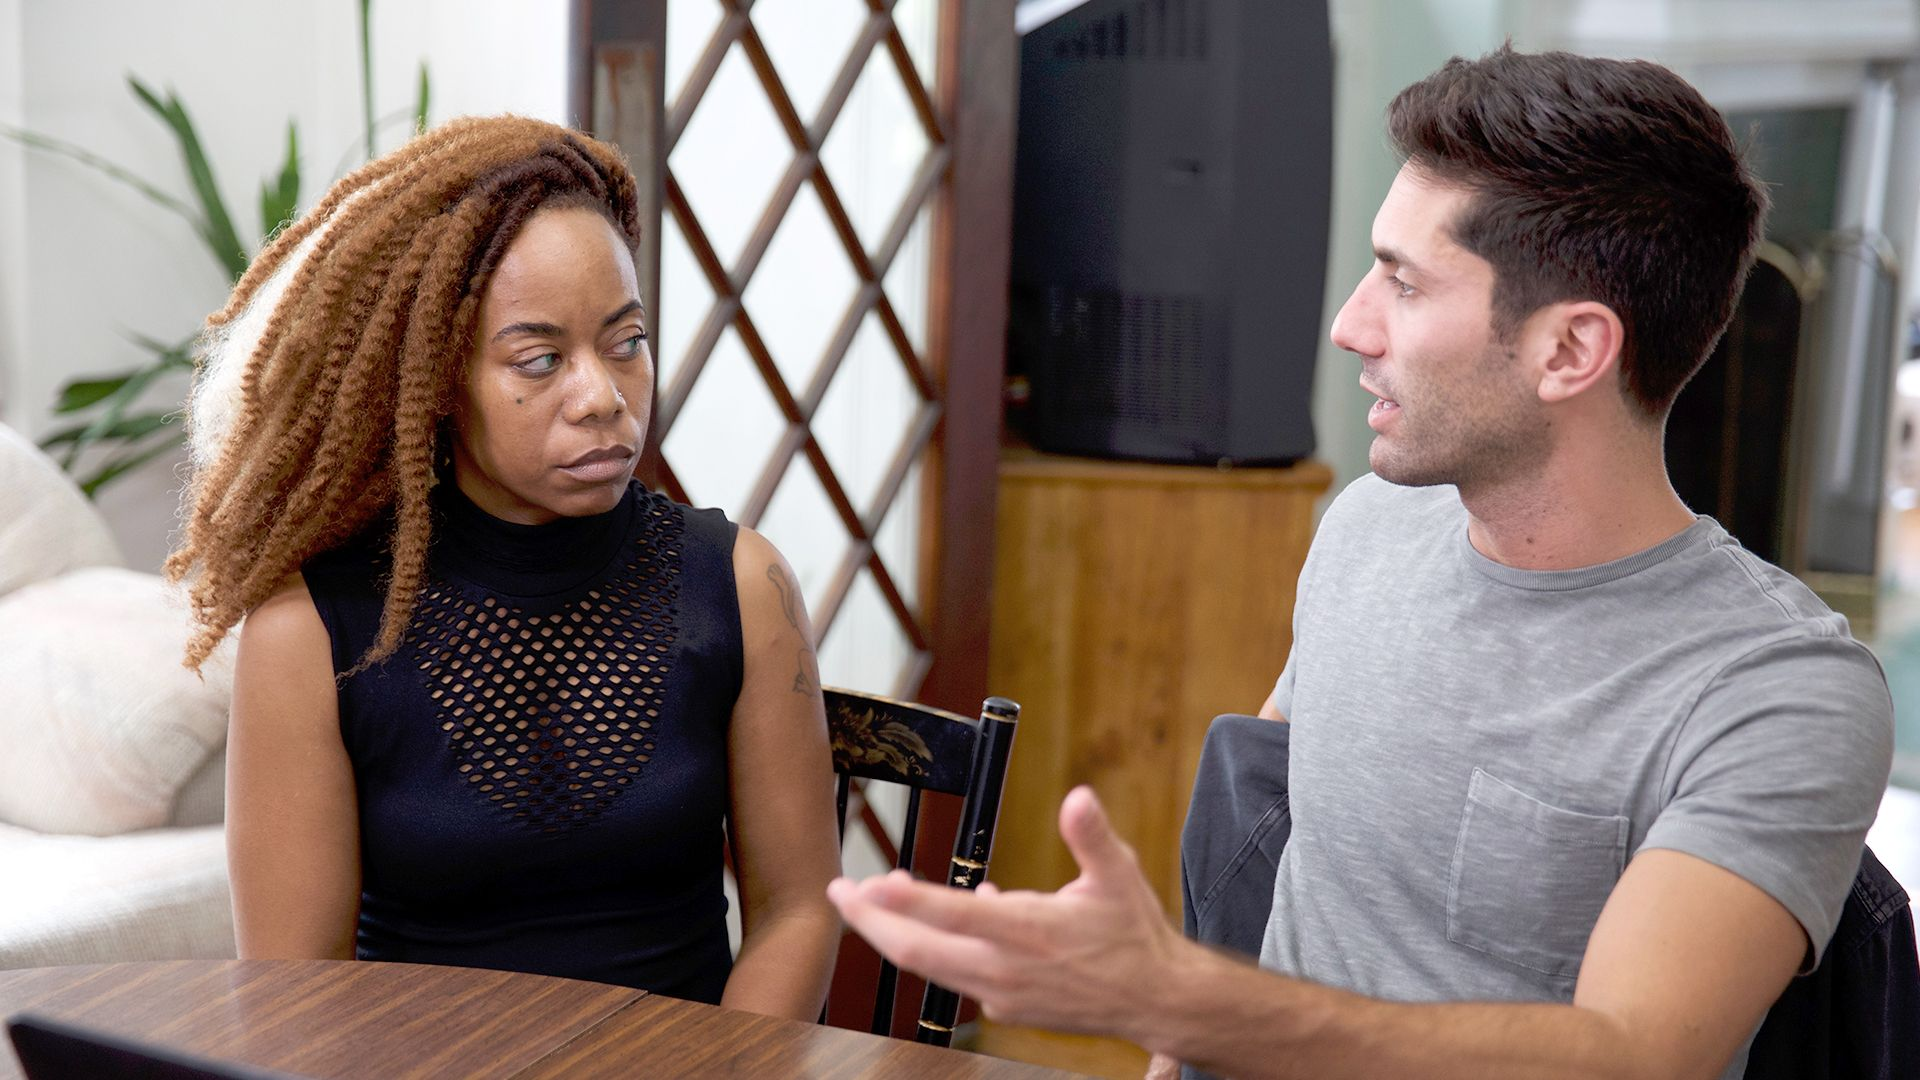 online dating series 7 ways to become the type of woman men fight for online by joshua pompey your phone lights up your online dating inbox has a new message for a split second, you.